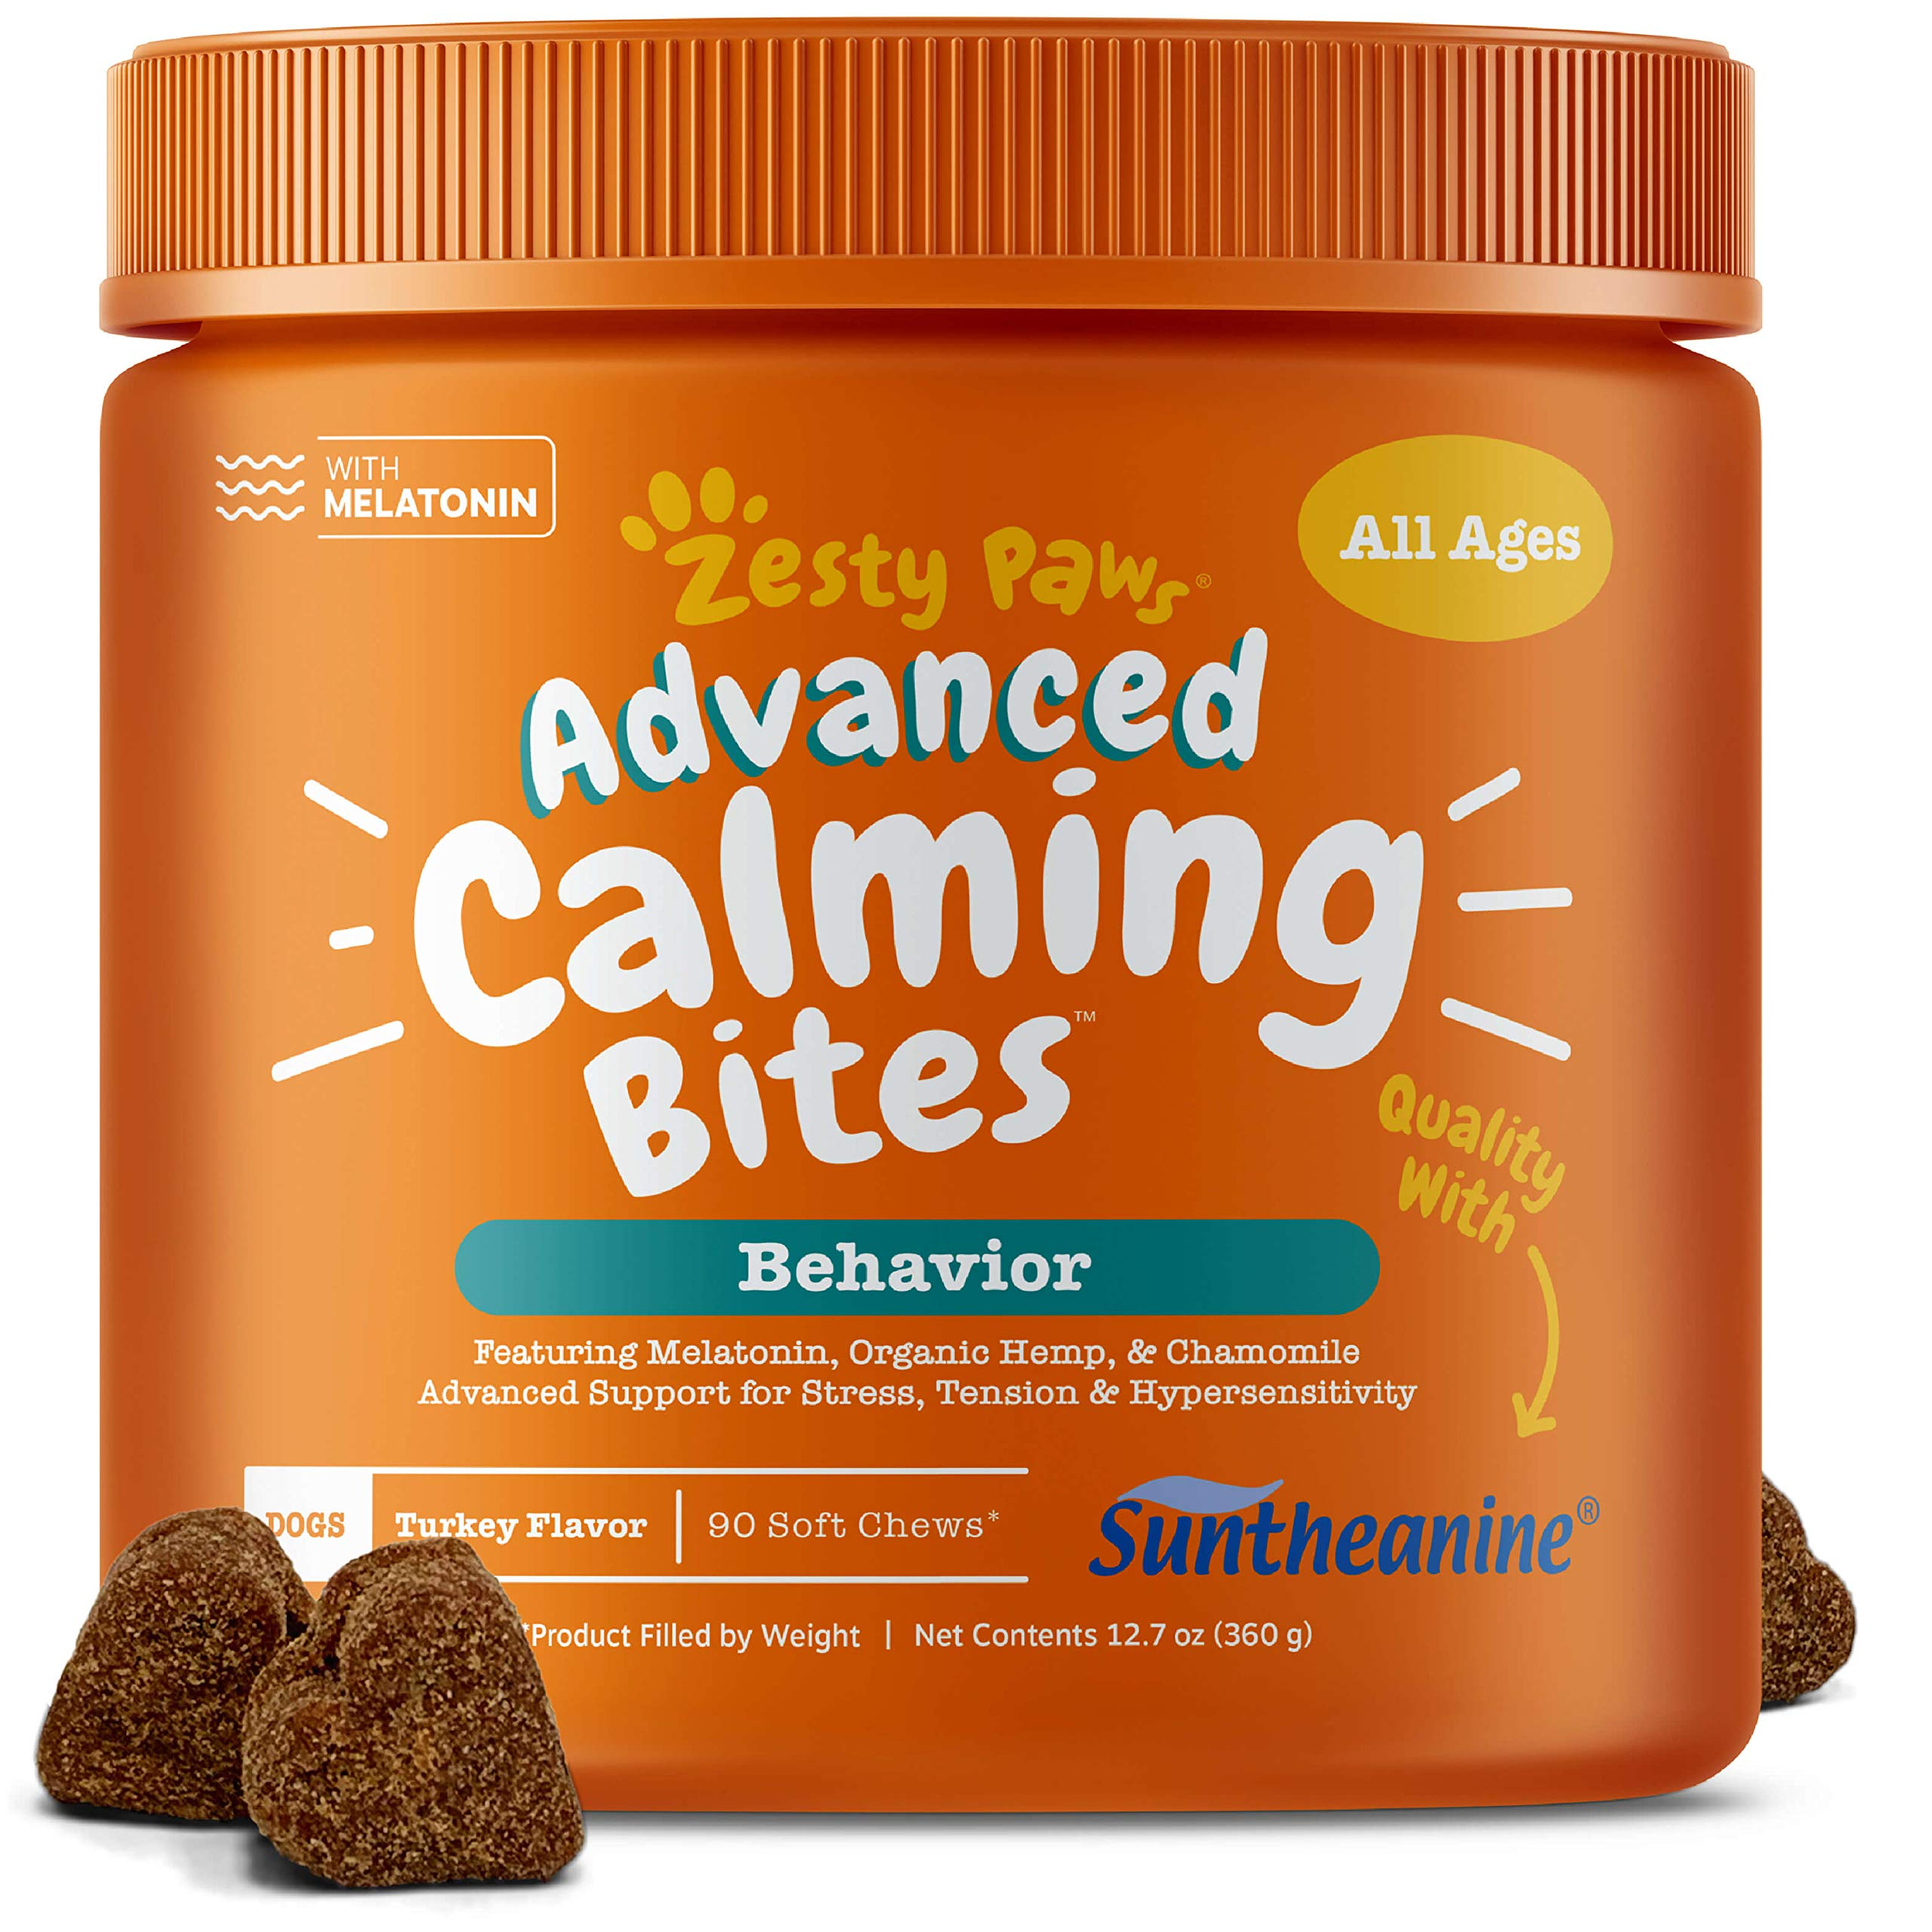 Zesty Paws Advanced Calming Soft Chews for Dogs - with Suntheanine & Melatonin - Anxiety Composure Aid with L Tryptophan for Dog Stress Relief - for Storms + Barking & Chewing - 90 Chew Treats by Zesty Paws